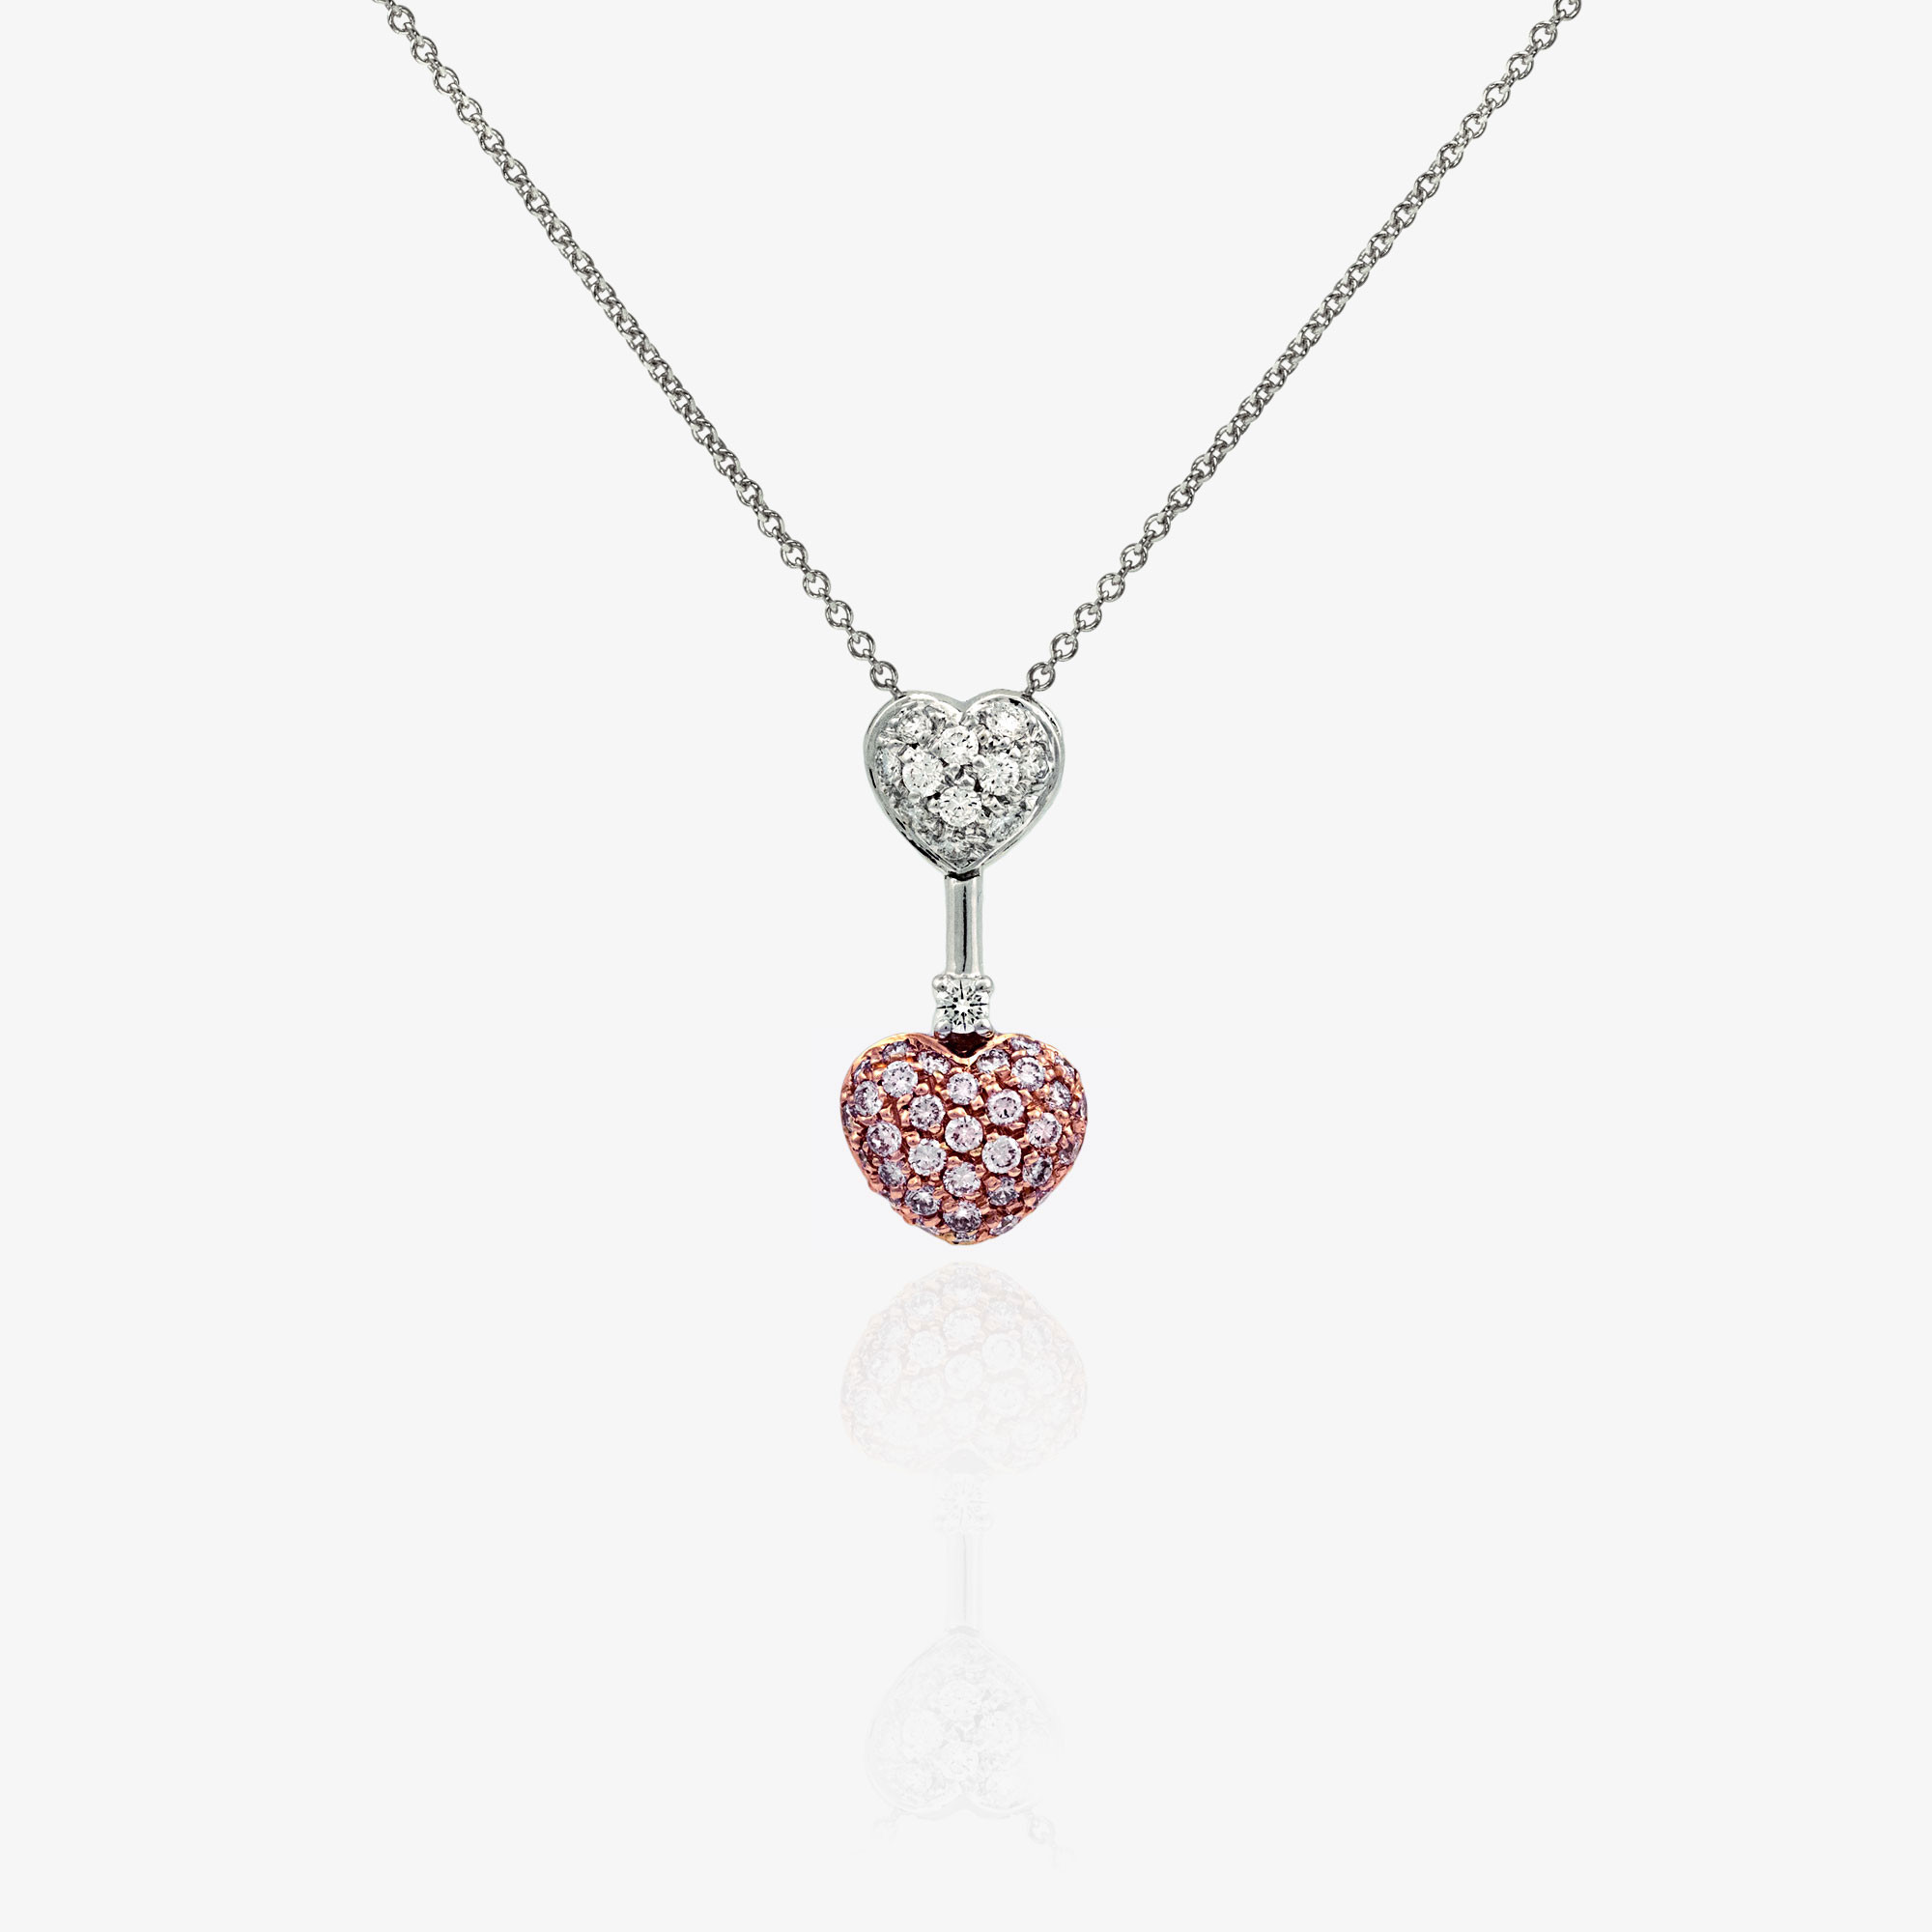 Heart pendants necklace